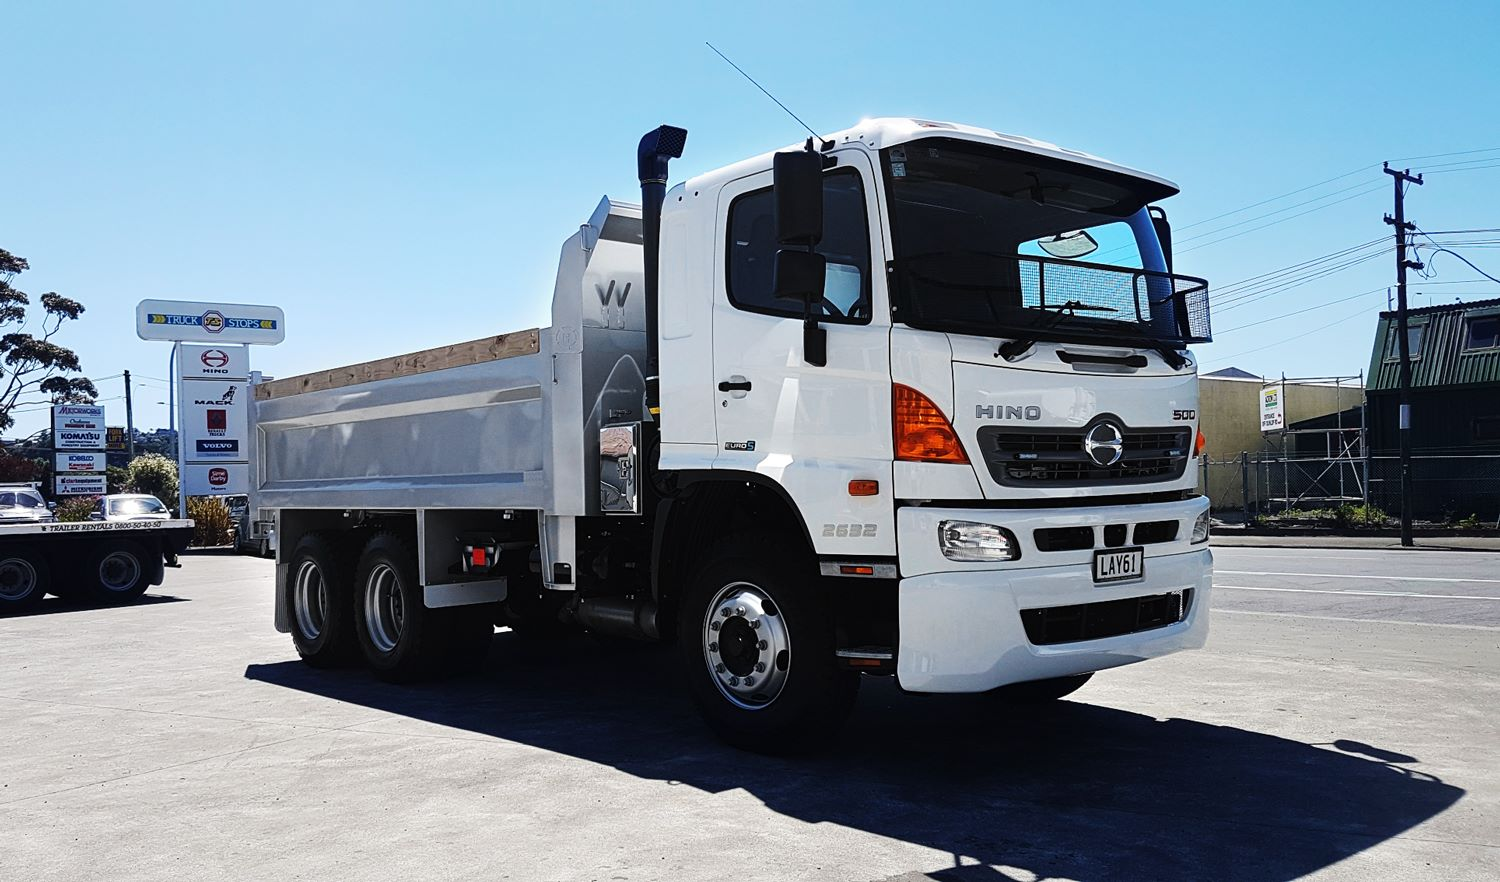 Inline Group - 500 Series Tipper